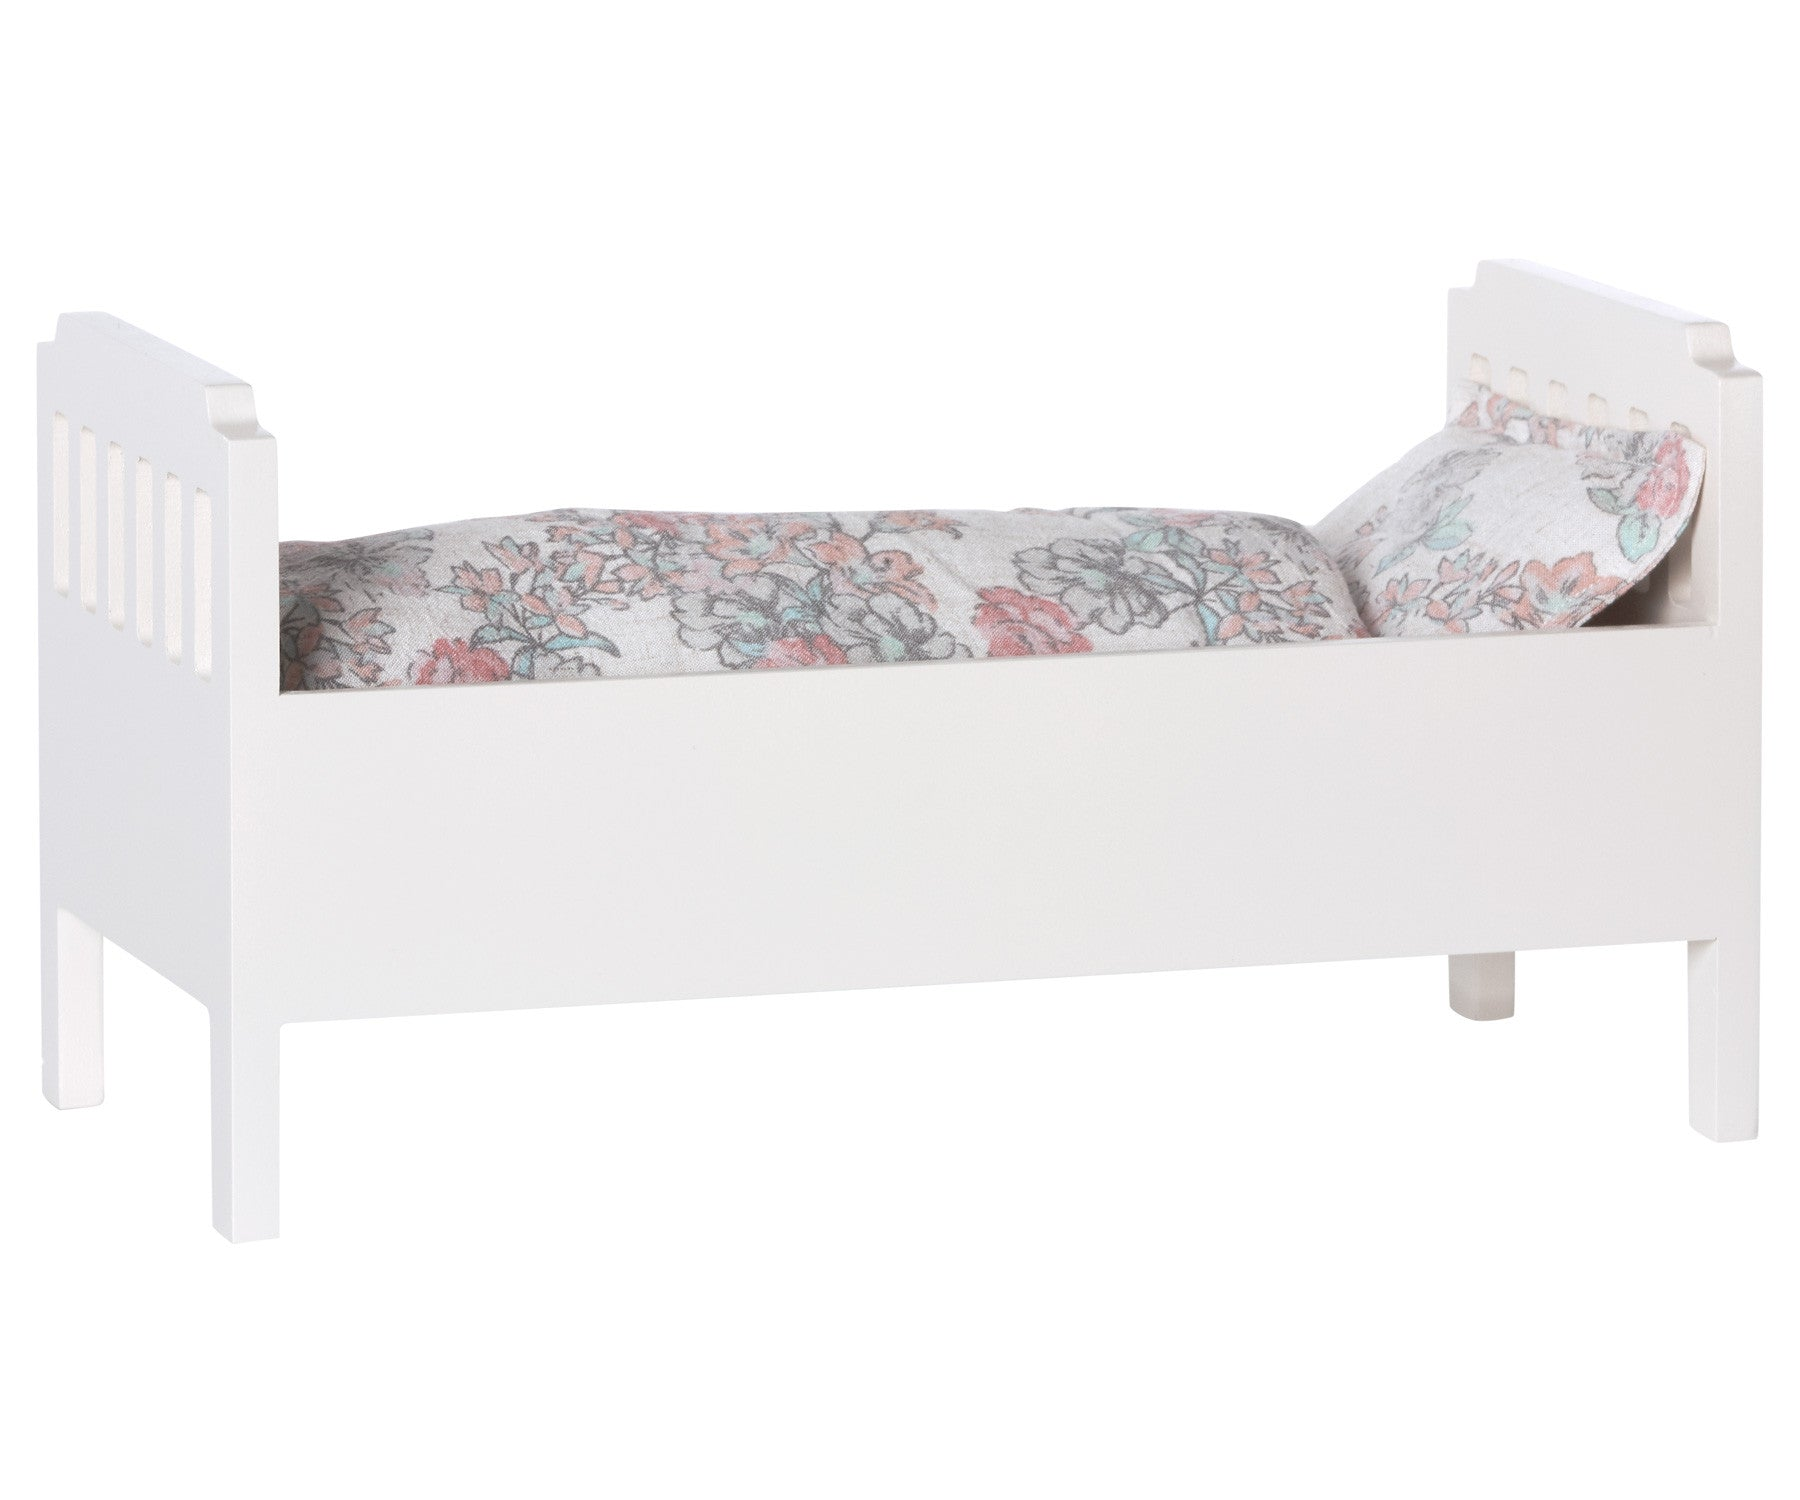 Bed, Small, off white